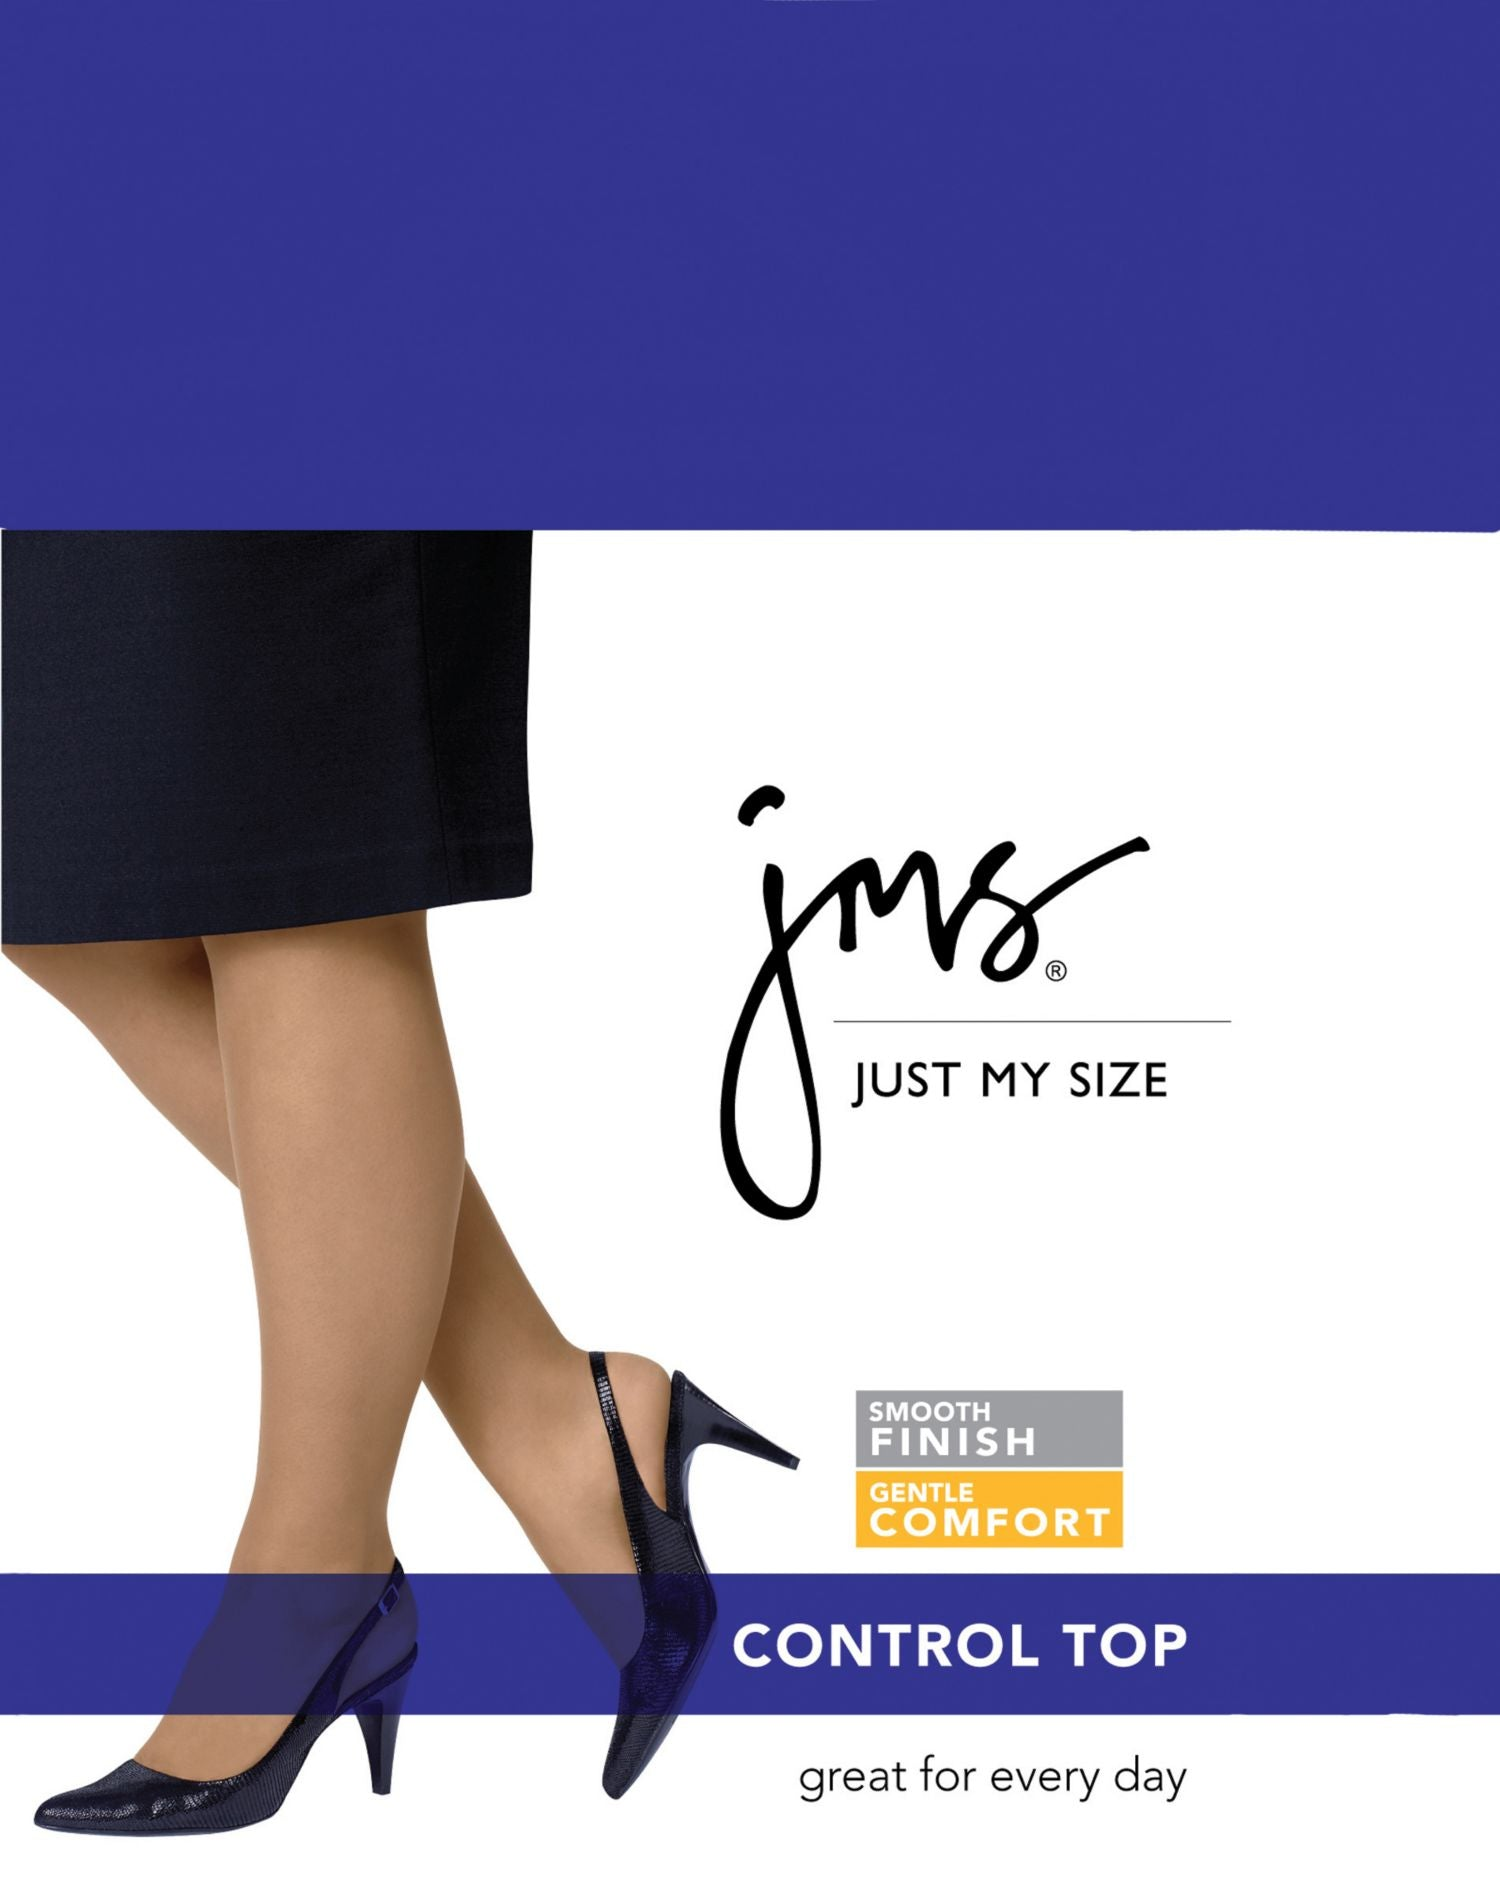 e0a9feef3b8 85103 - Just My Size Control Top